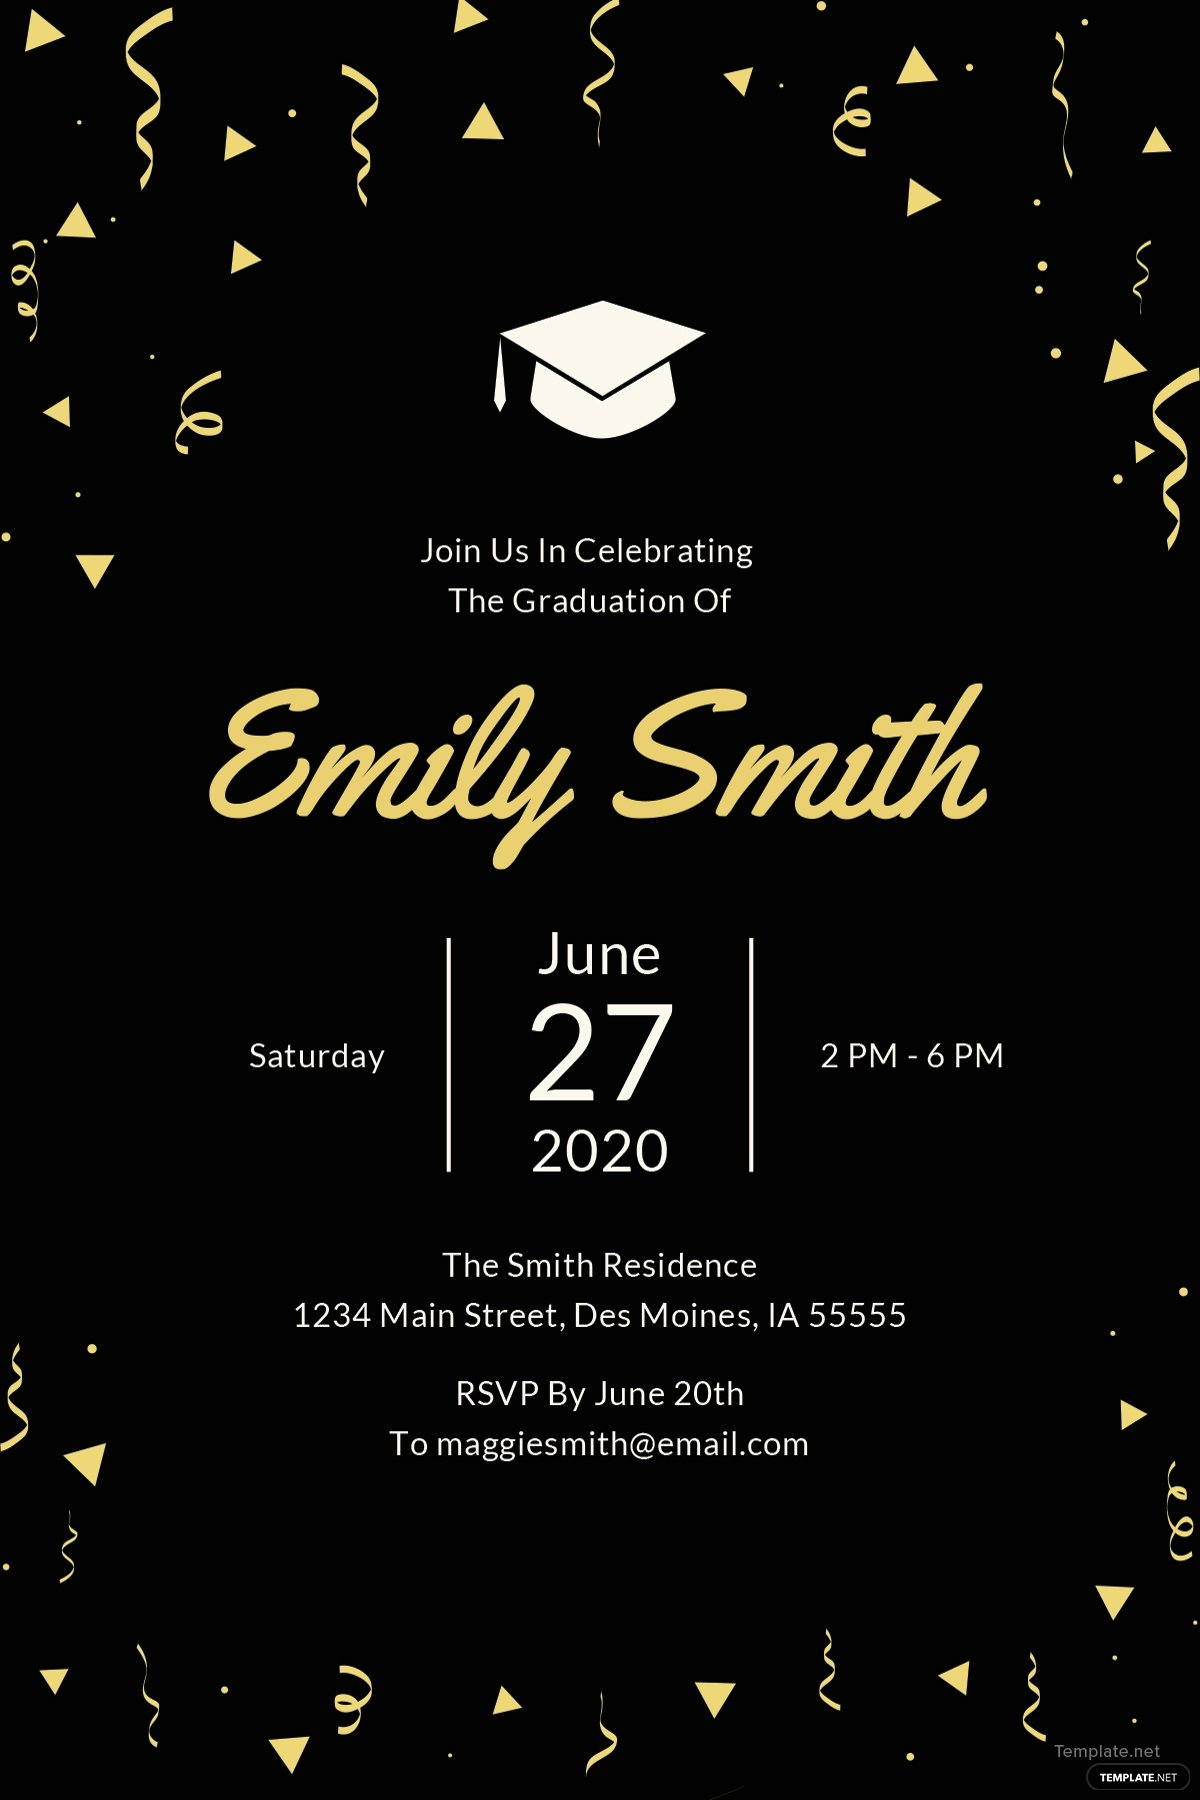 Free Downloadable Graduation Invitation Templates Fresh Free Graduation Invitation Template In Microsoft Word